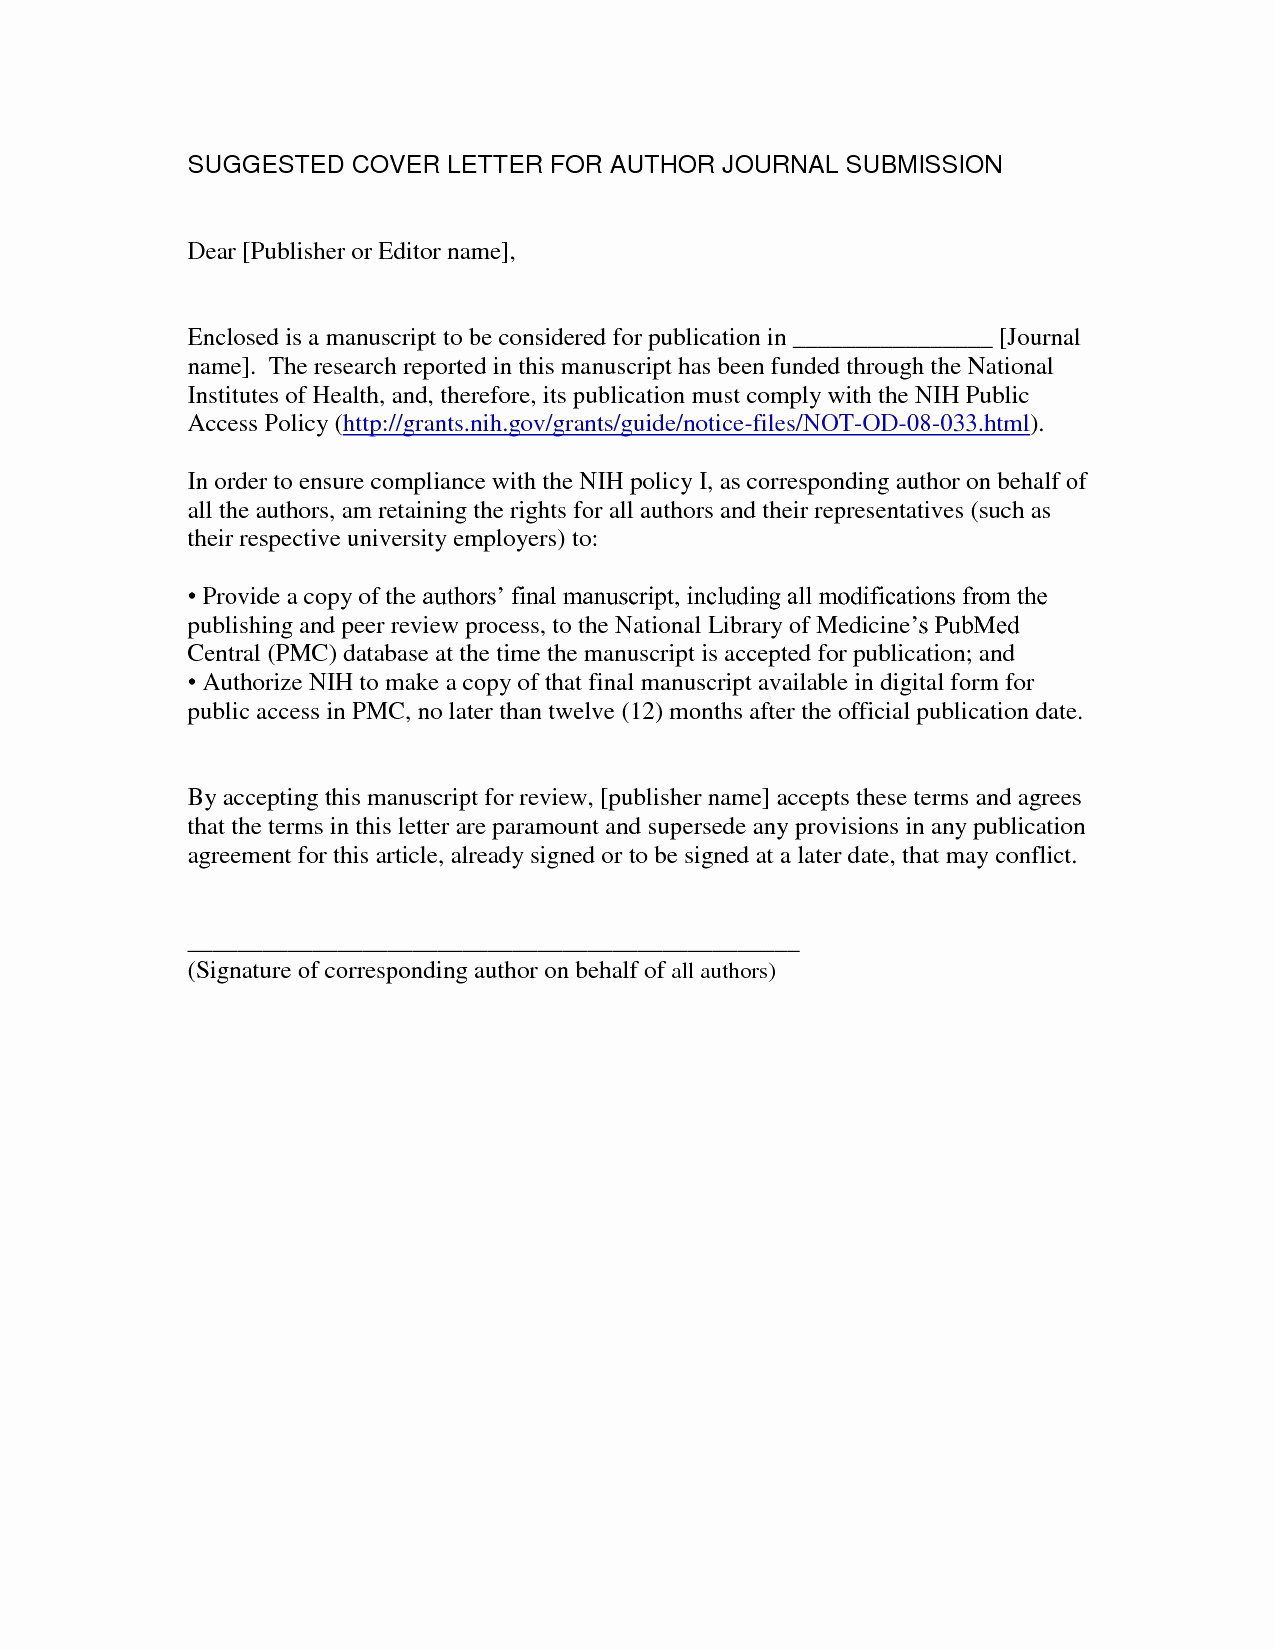 Cover Letter Template Accounting - Cover Letter Template for Accounting Position New Cover Letter